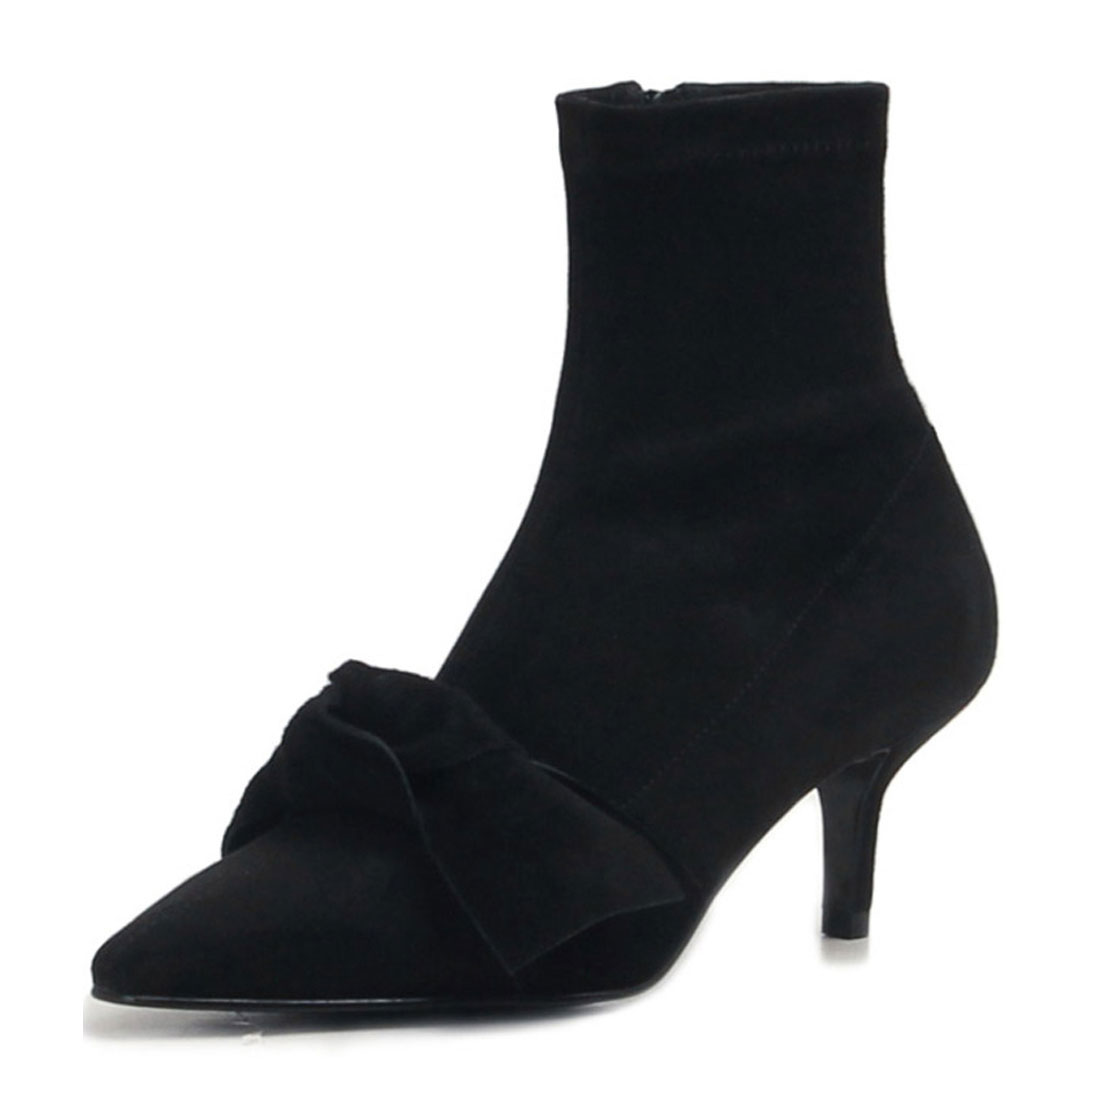 fashion pointed with bownot black suede leather ankle boot women BT1900